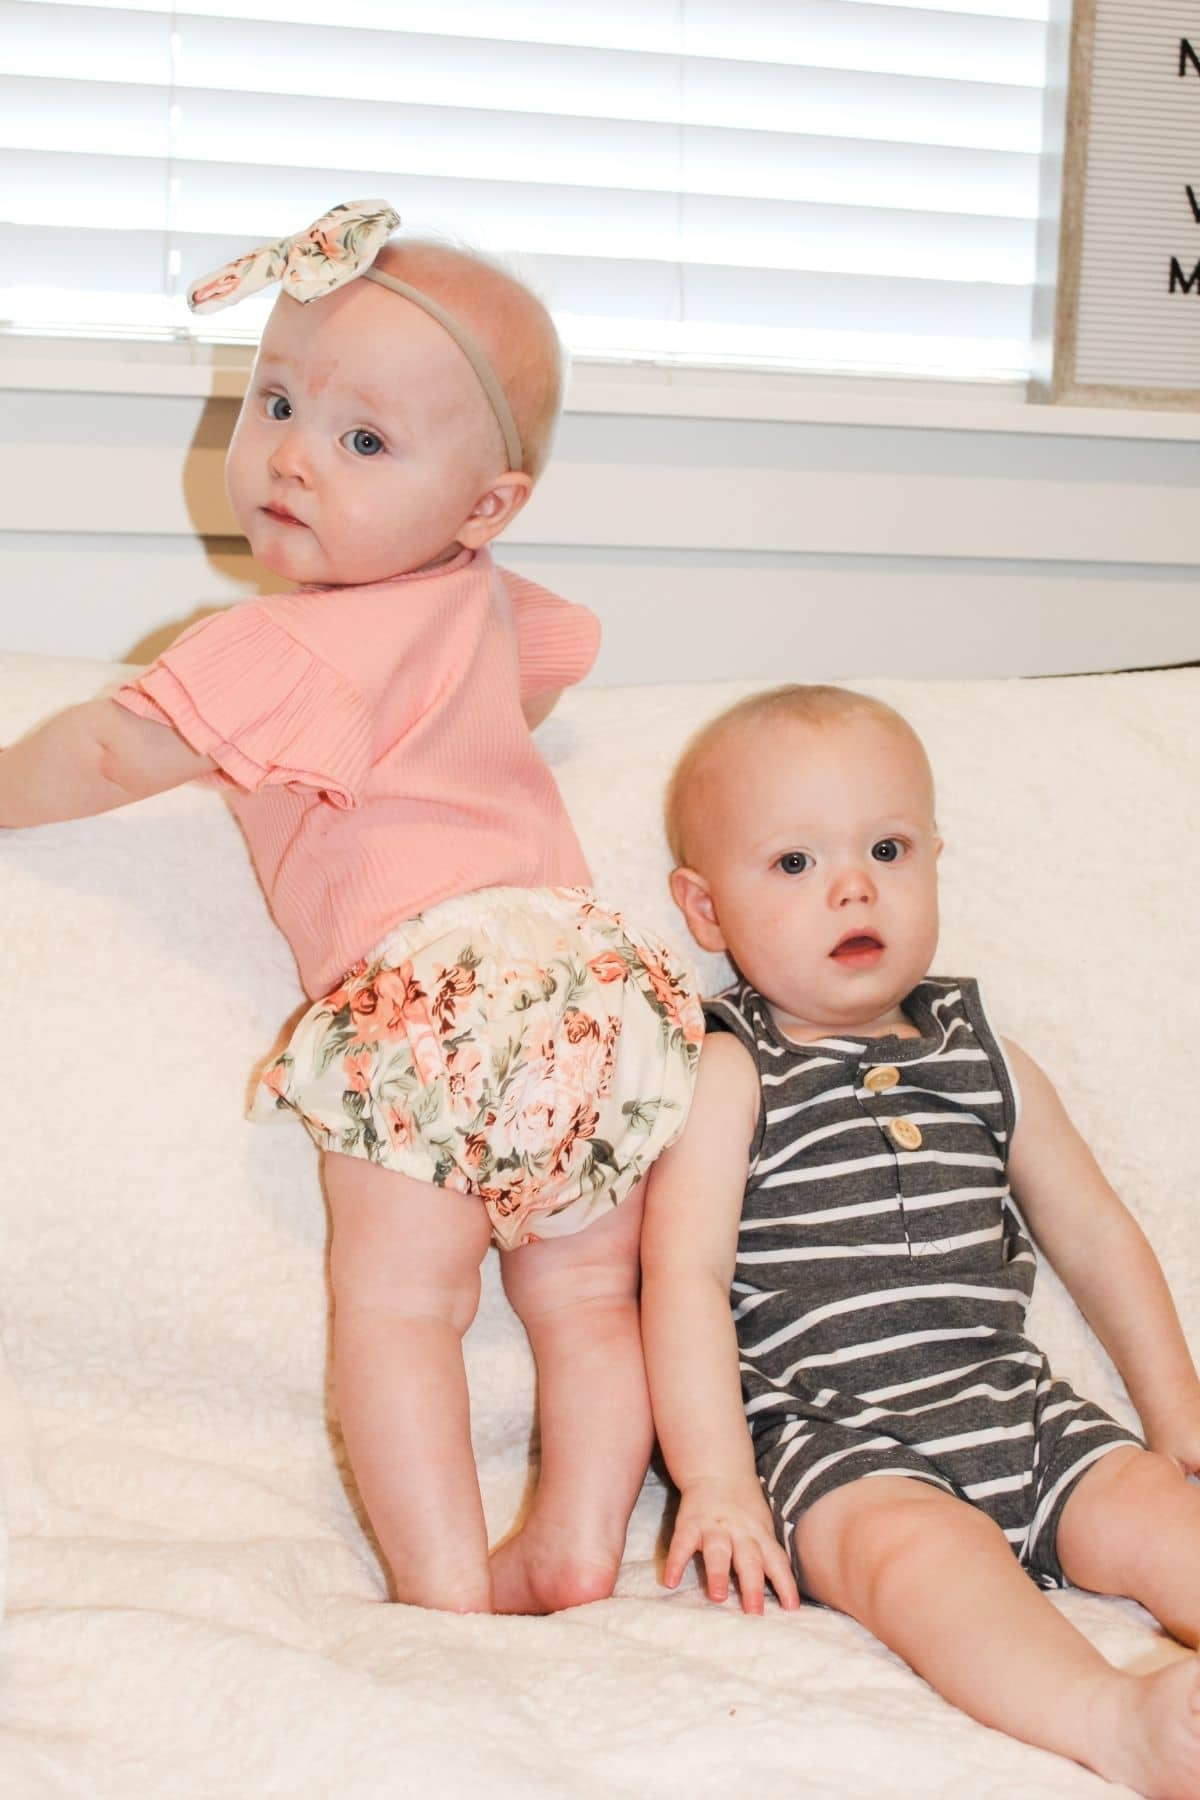 boy girl twins wearing eclair co baby clothes sitting next to each other on a couch